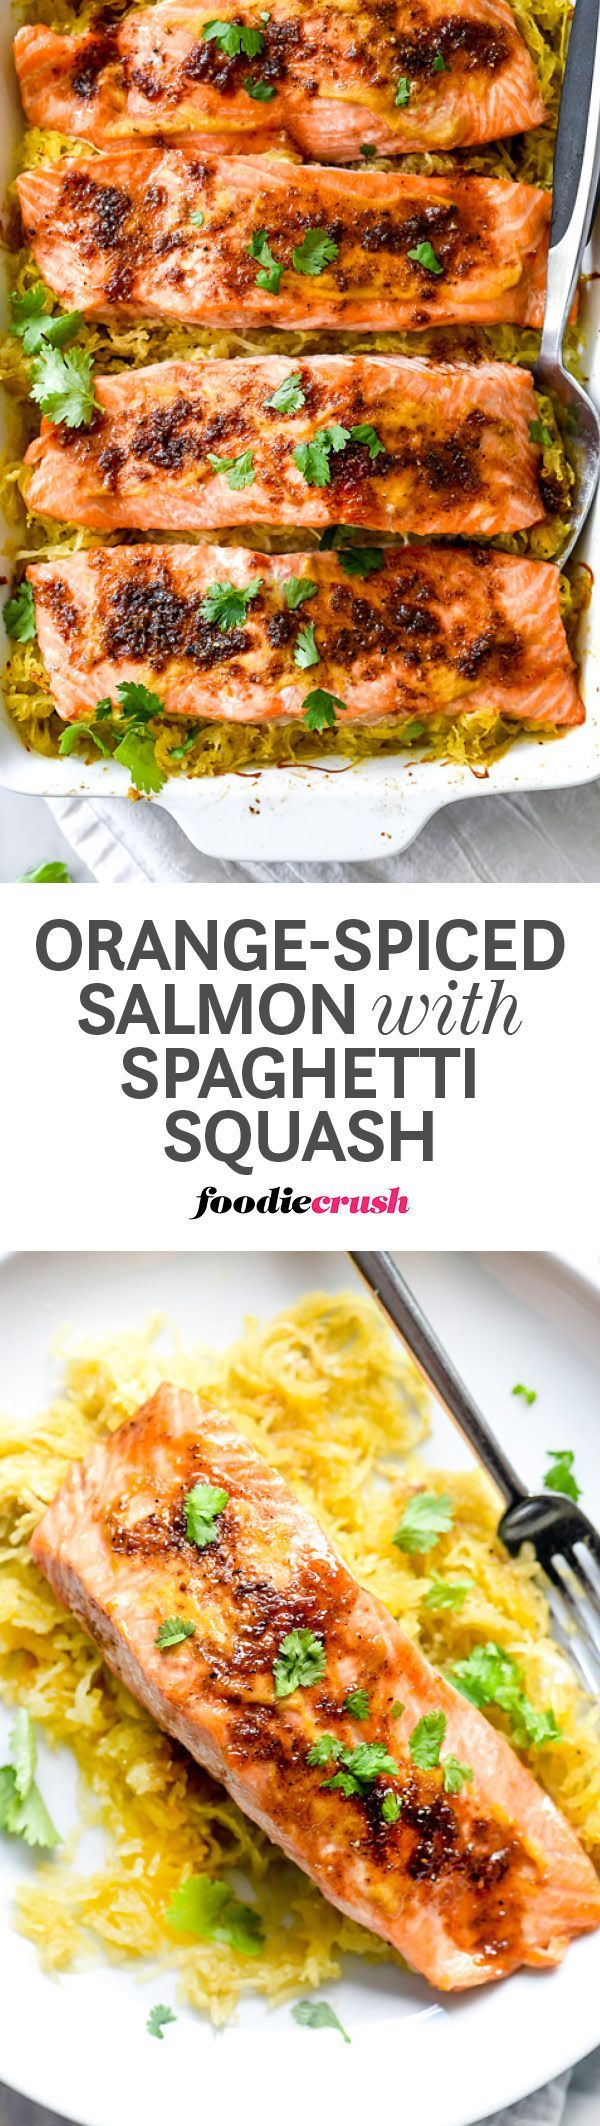 A combination of five-spice powder, brown sugar and orange zest gives a sweet but subtle flavor to this combination of salmon with a side of spaghetti squash | foodiecrush.com #salmon #dinner #squash